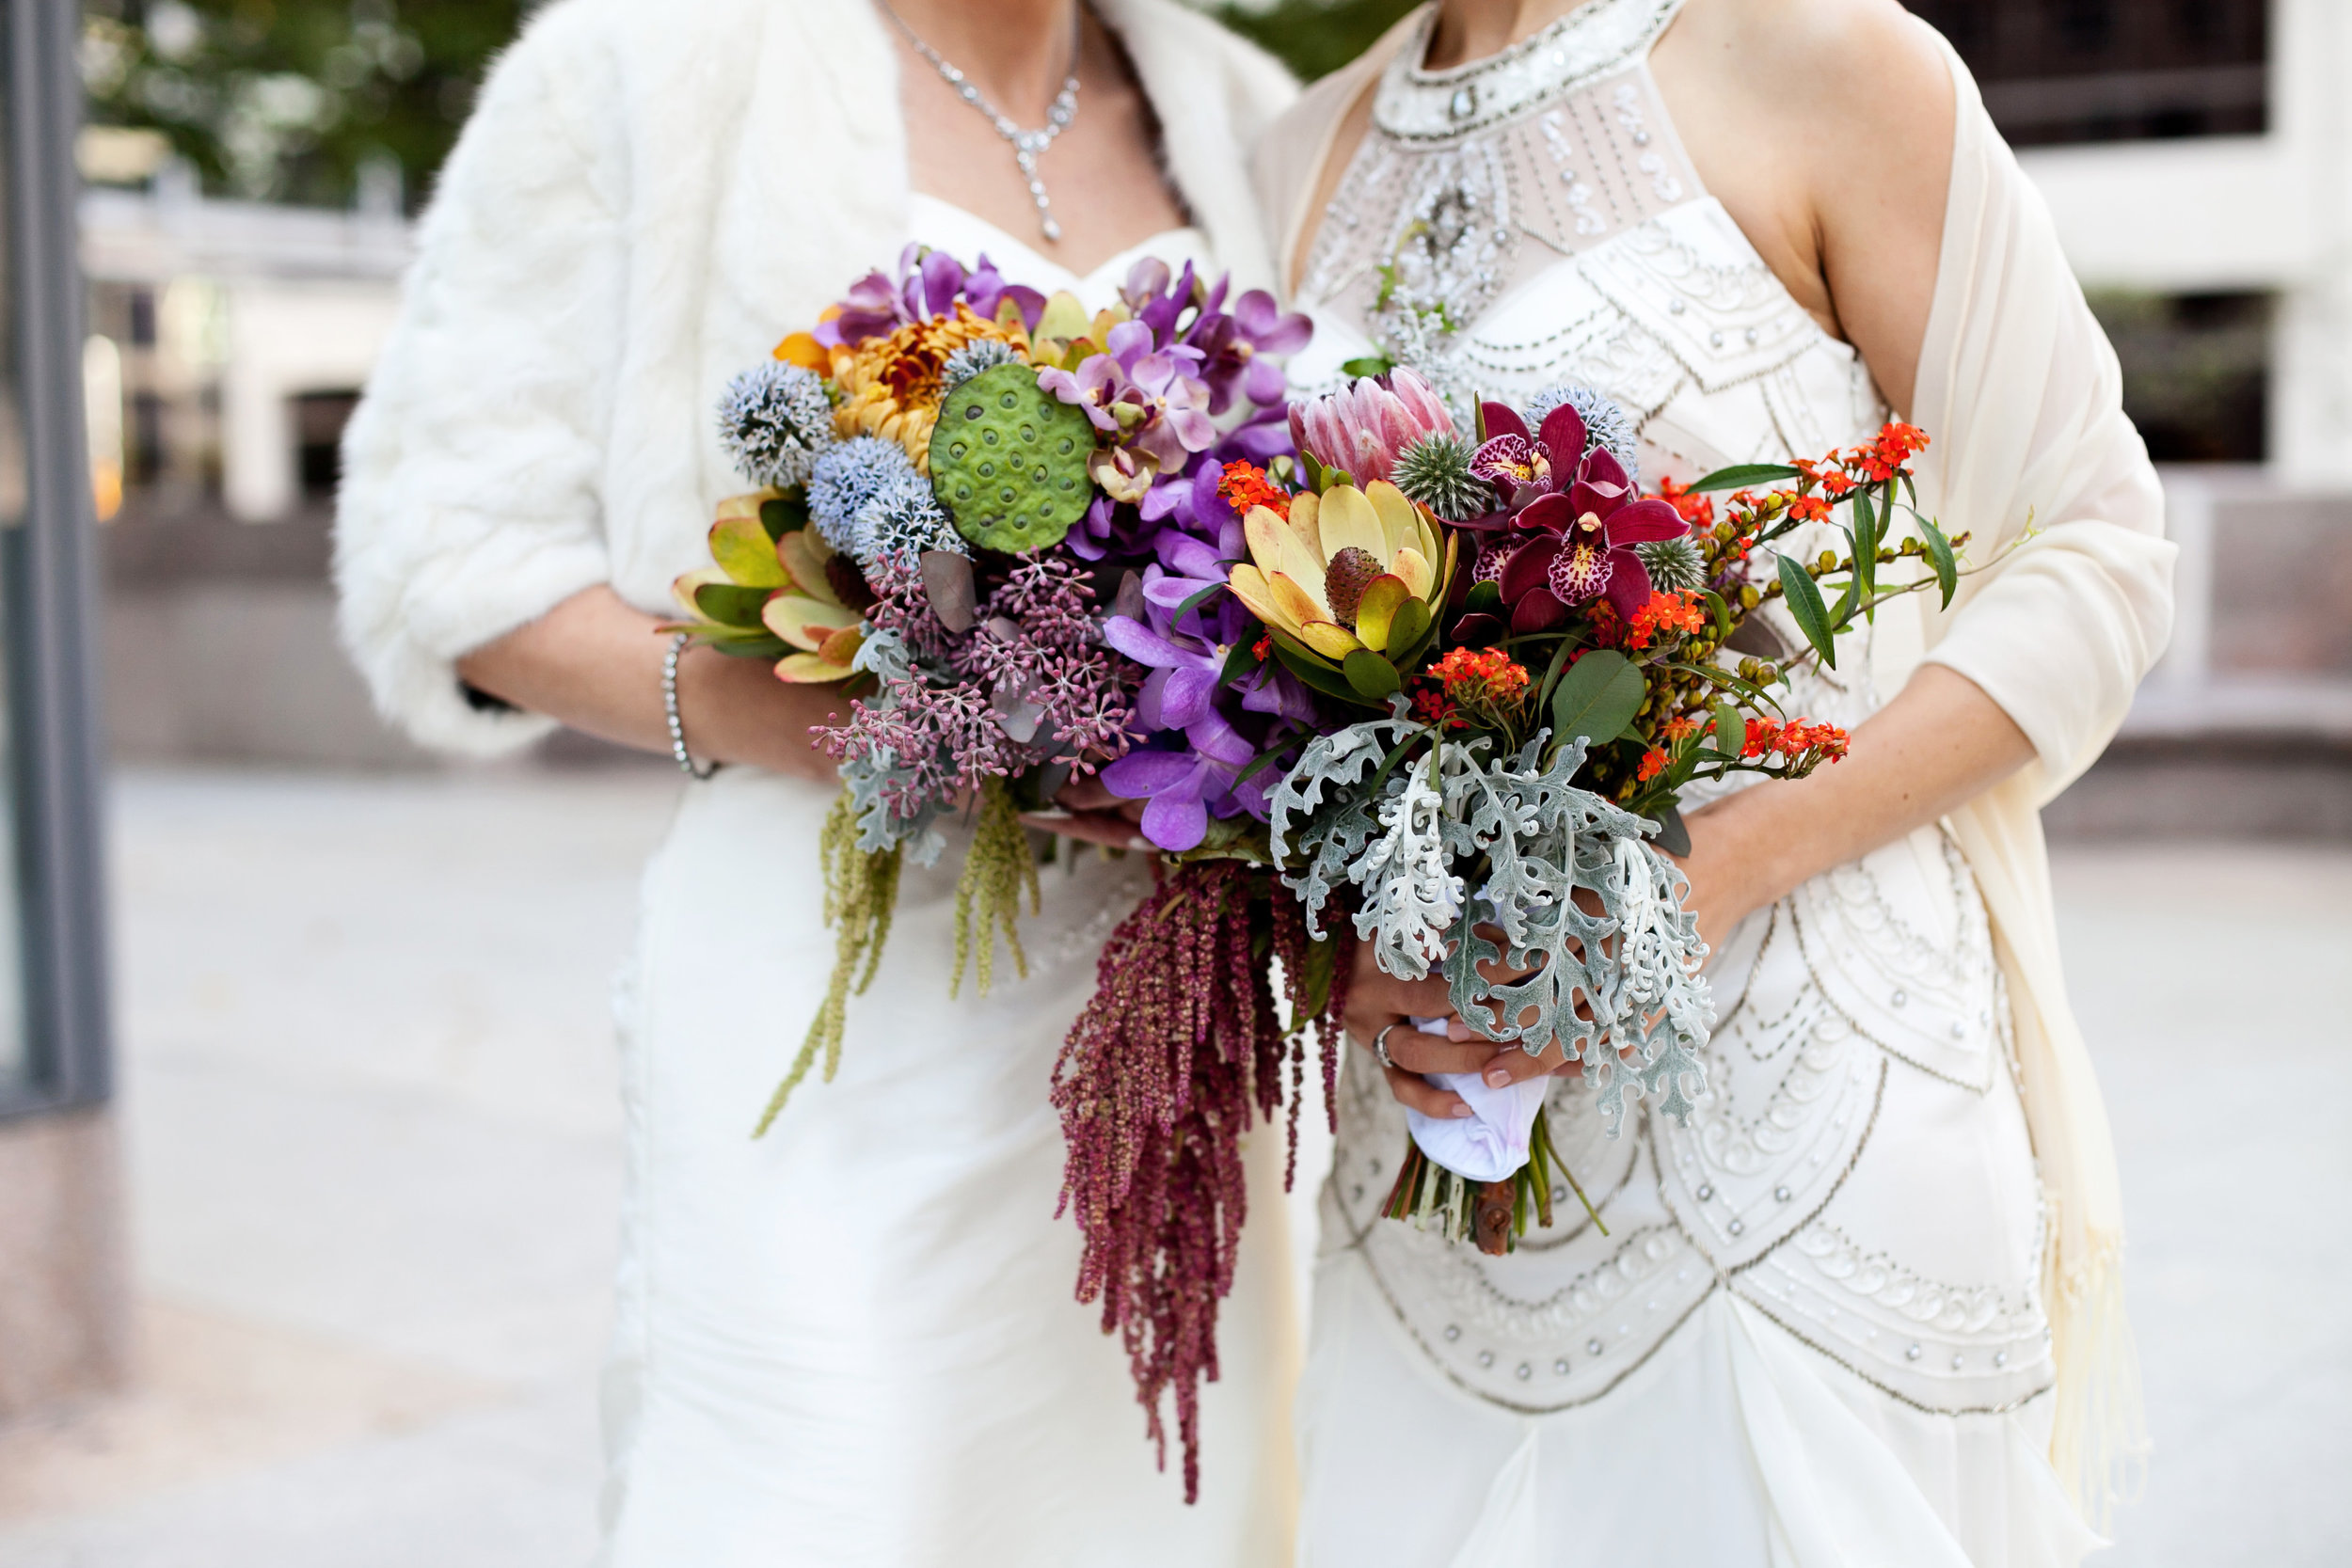 13 first look two brides two brides first look colorful bouquets both brides wear wedding dresses candid first look moment Life Design Events.jpg